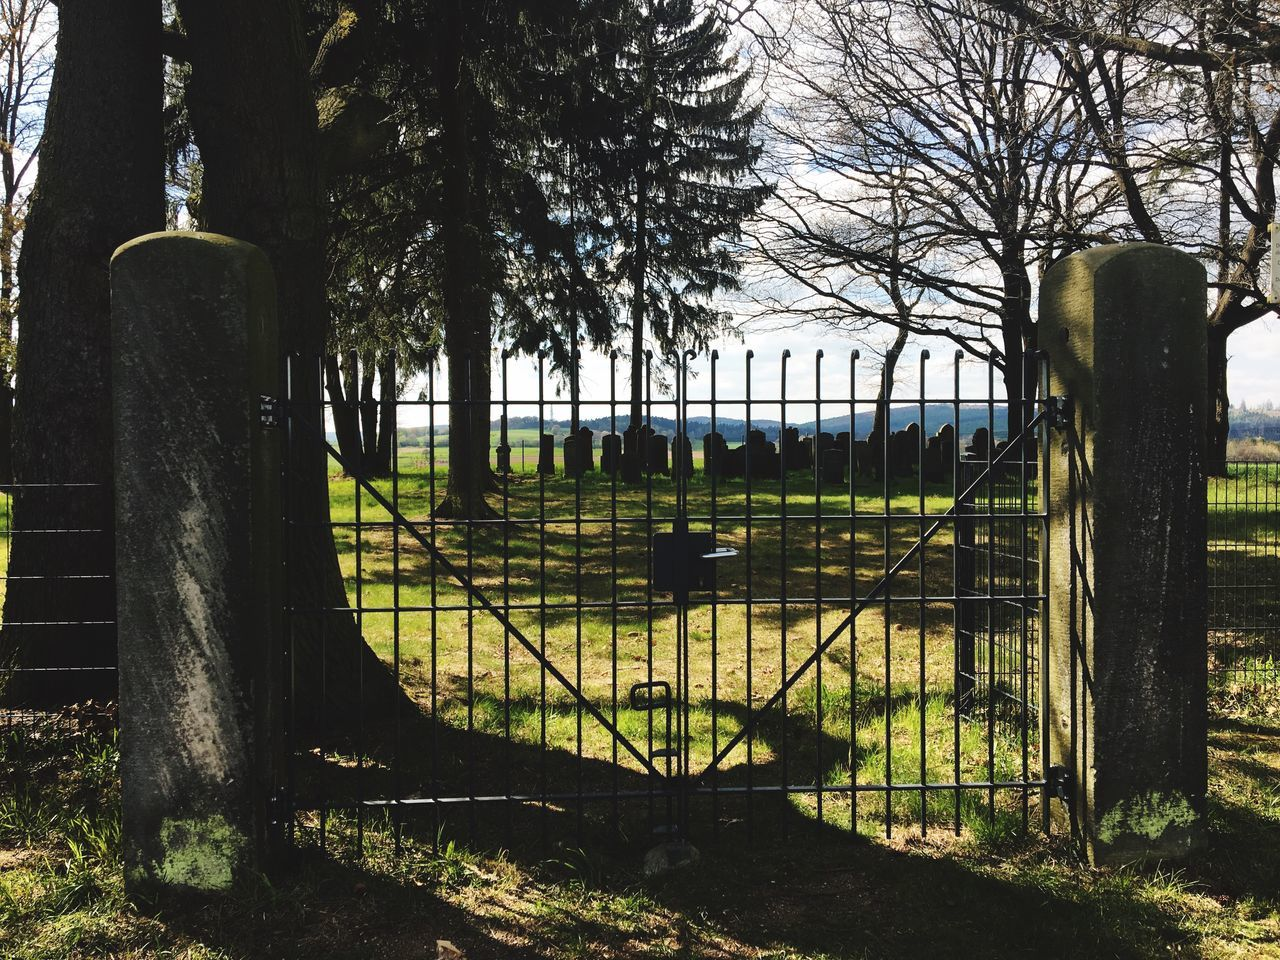 Gate Gates Cemetery Photography Cemetery The Secret Spaces Cemetery_shots Cemeteryscape Cemetary Cemeterybeauty Mystery Mystic Secret Garden Secret Places No People Secret Spaces Secret Art Is Everywhere The Architect - 2017 EyeEm Awards